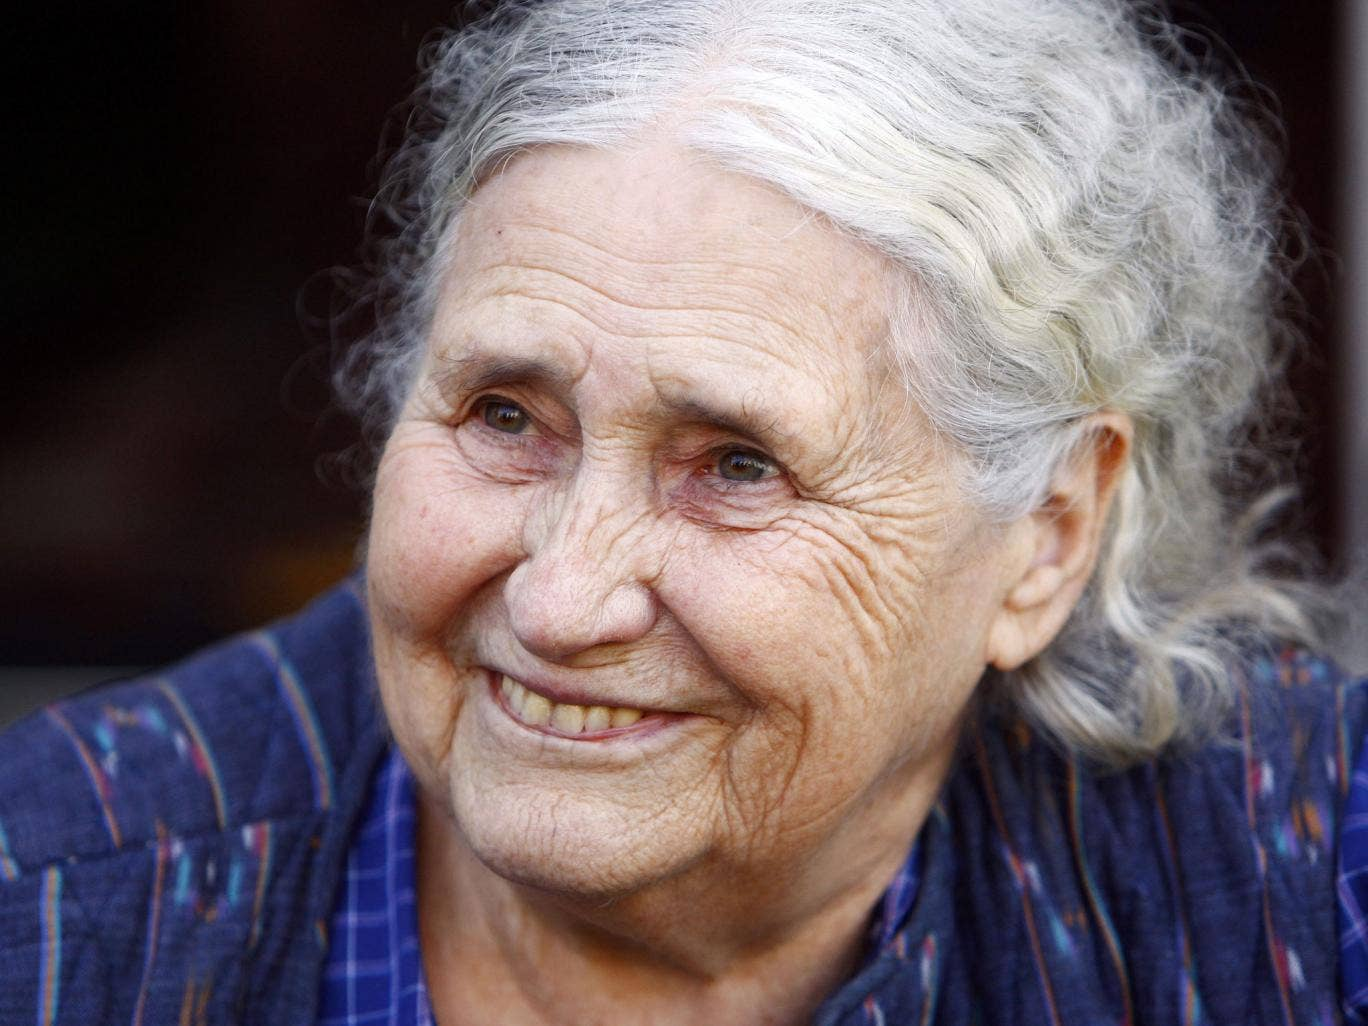 Doris Lessing continued to write until 2008, leaving behind almost 30 novels